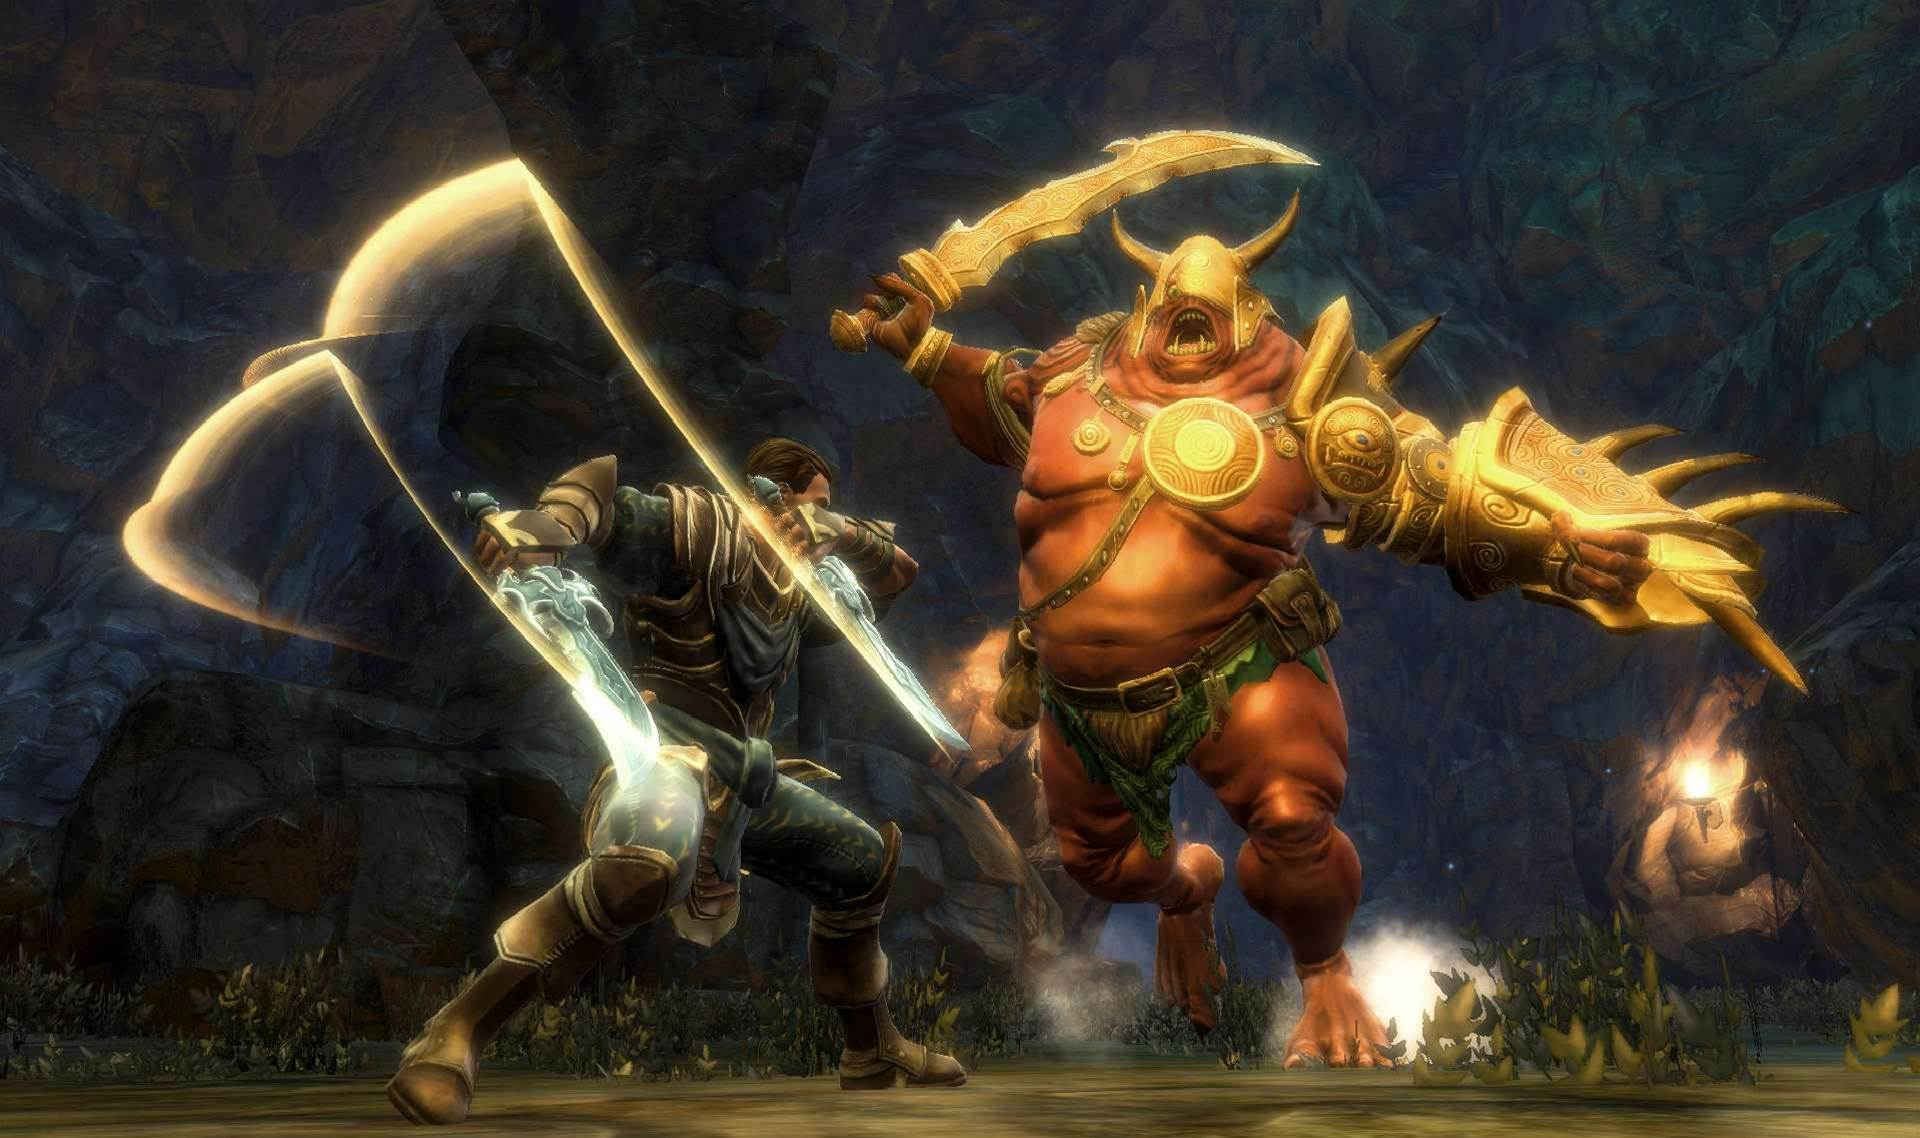 The art and design of Reckoning: Kingdoms of Amalur